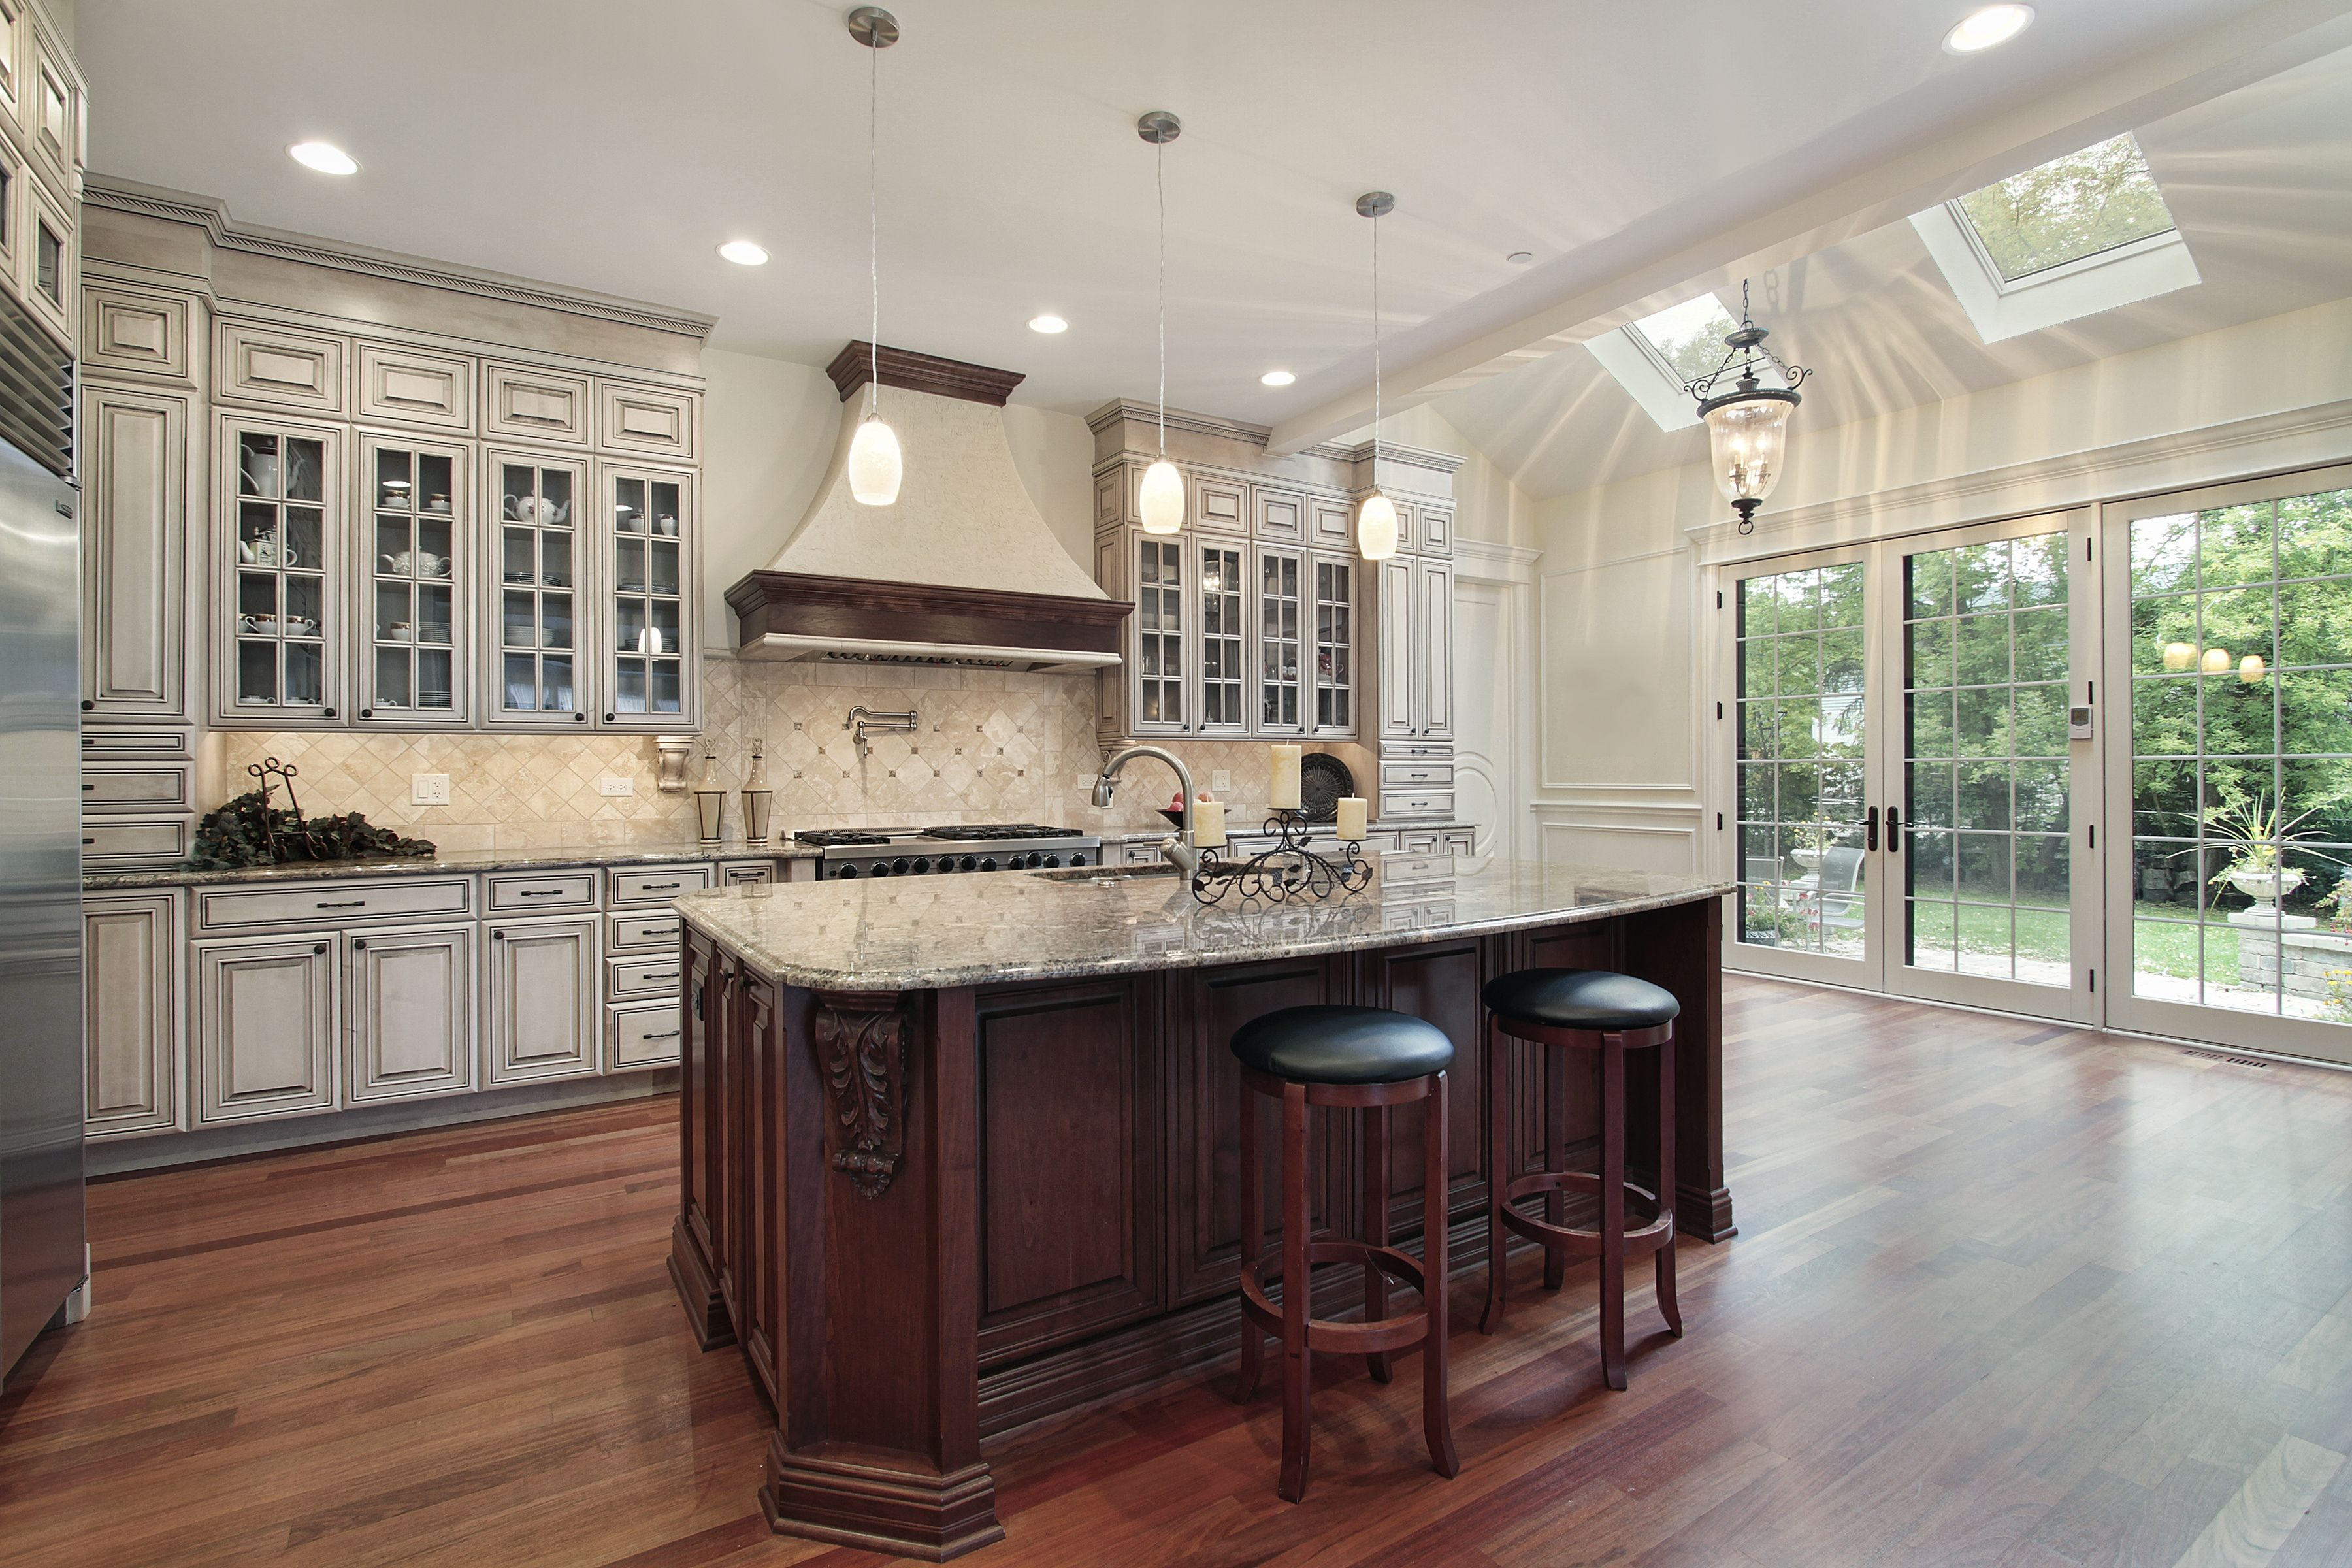 Best Kitchen Remodeling Companies Making a